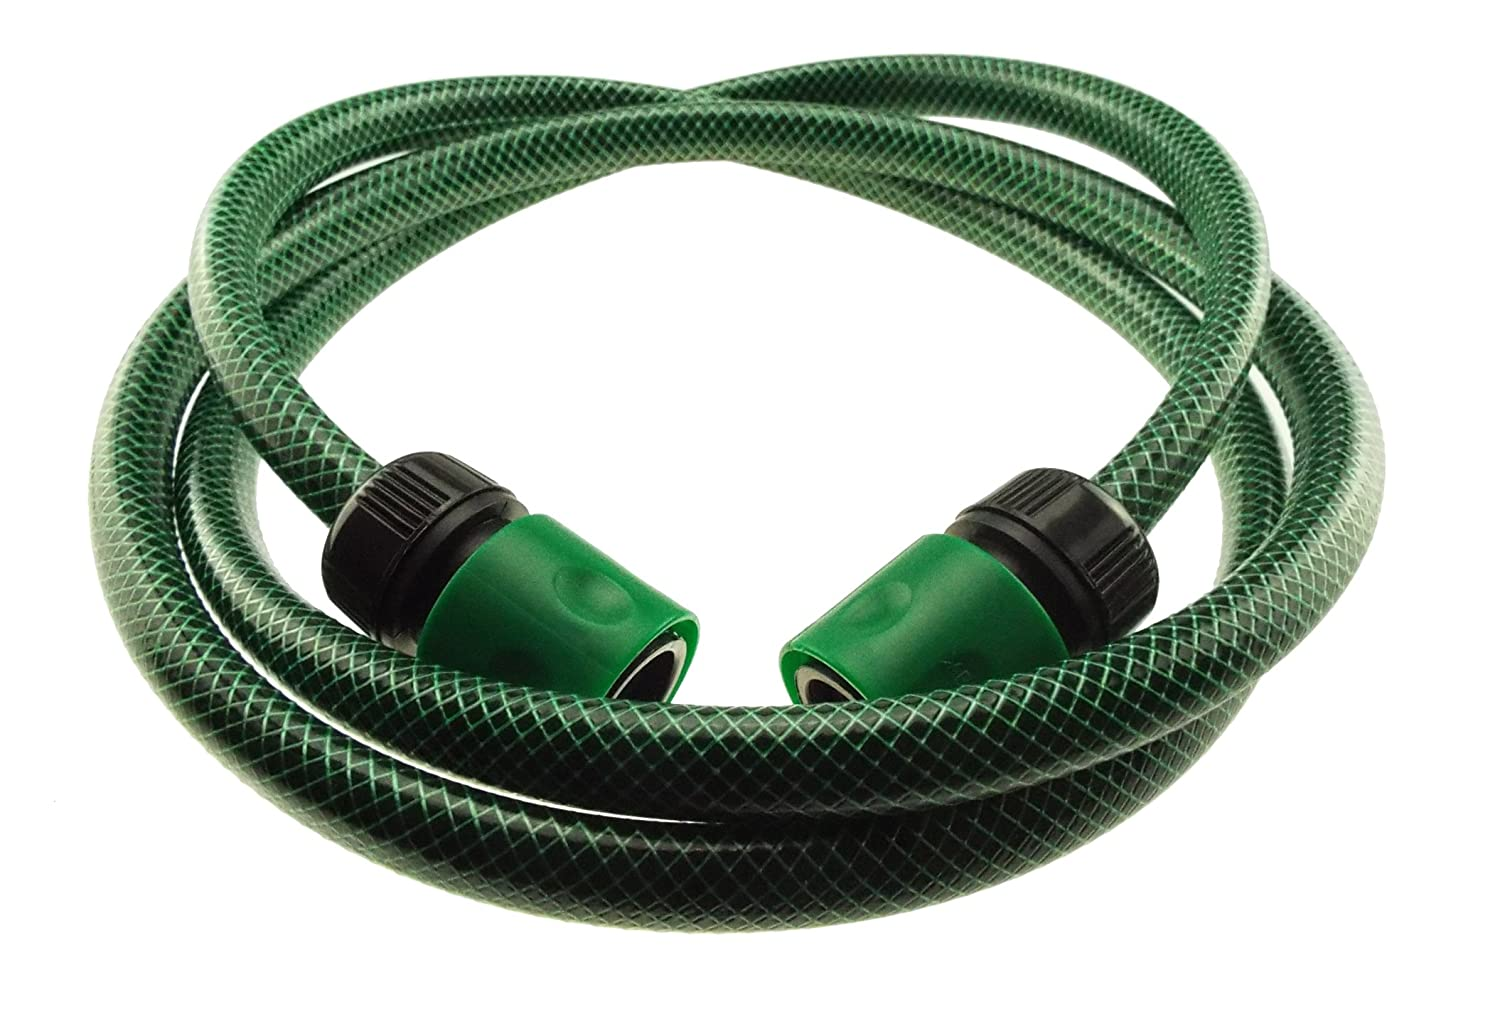 GREEN HOSE PIPE CONNECTION KIT TO JOIN YOUR HOSE REEL TO YOUR GARDEN TAP 2M LENGTH OF PIPE 2 CONNECTORS